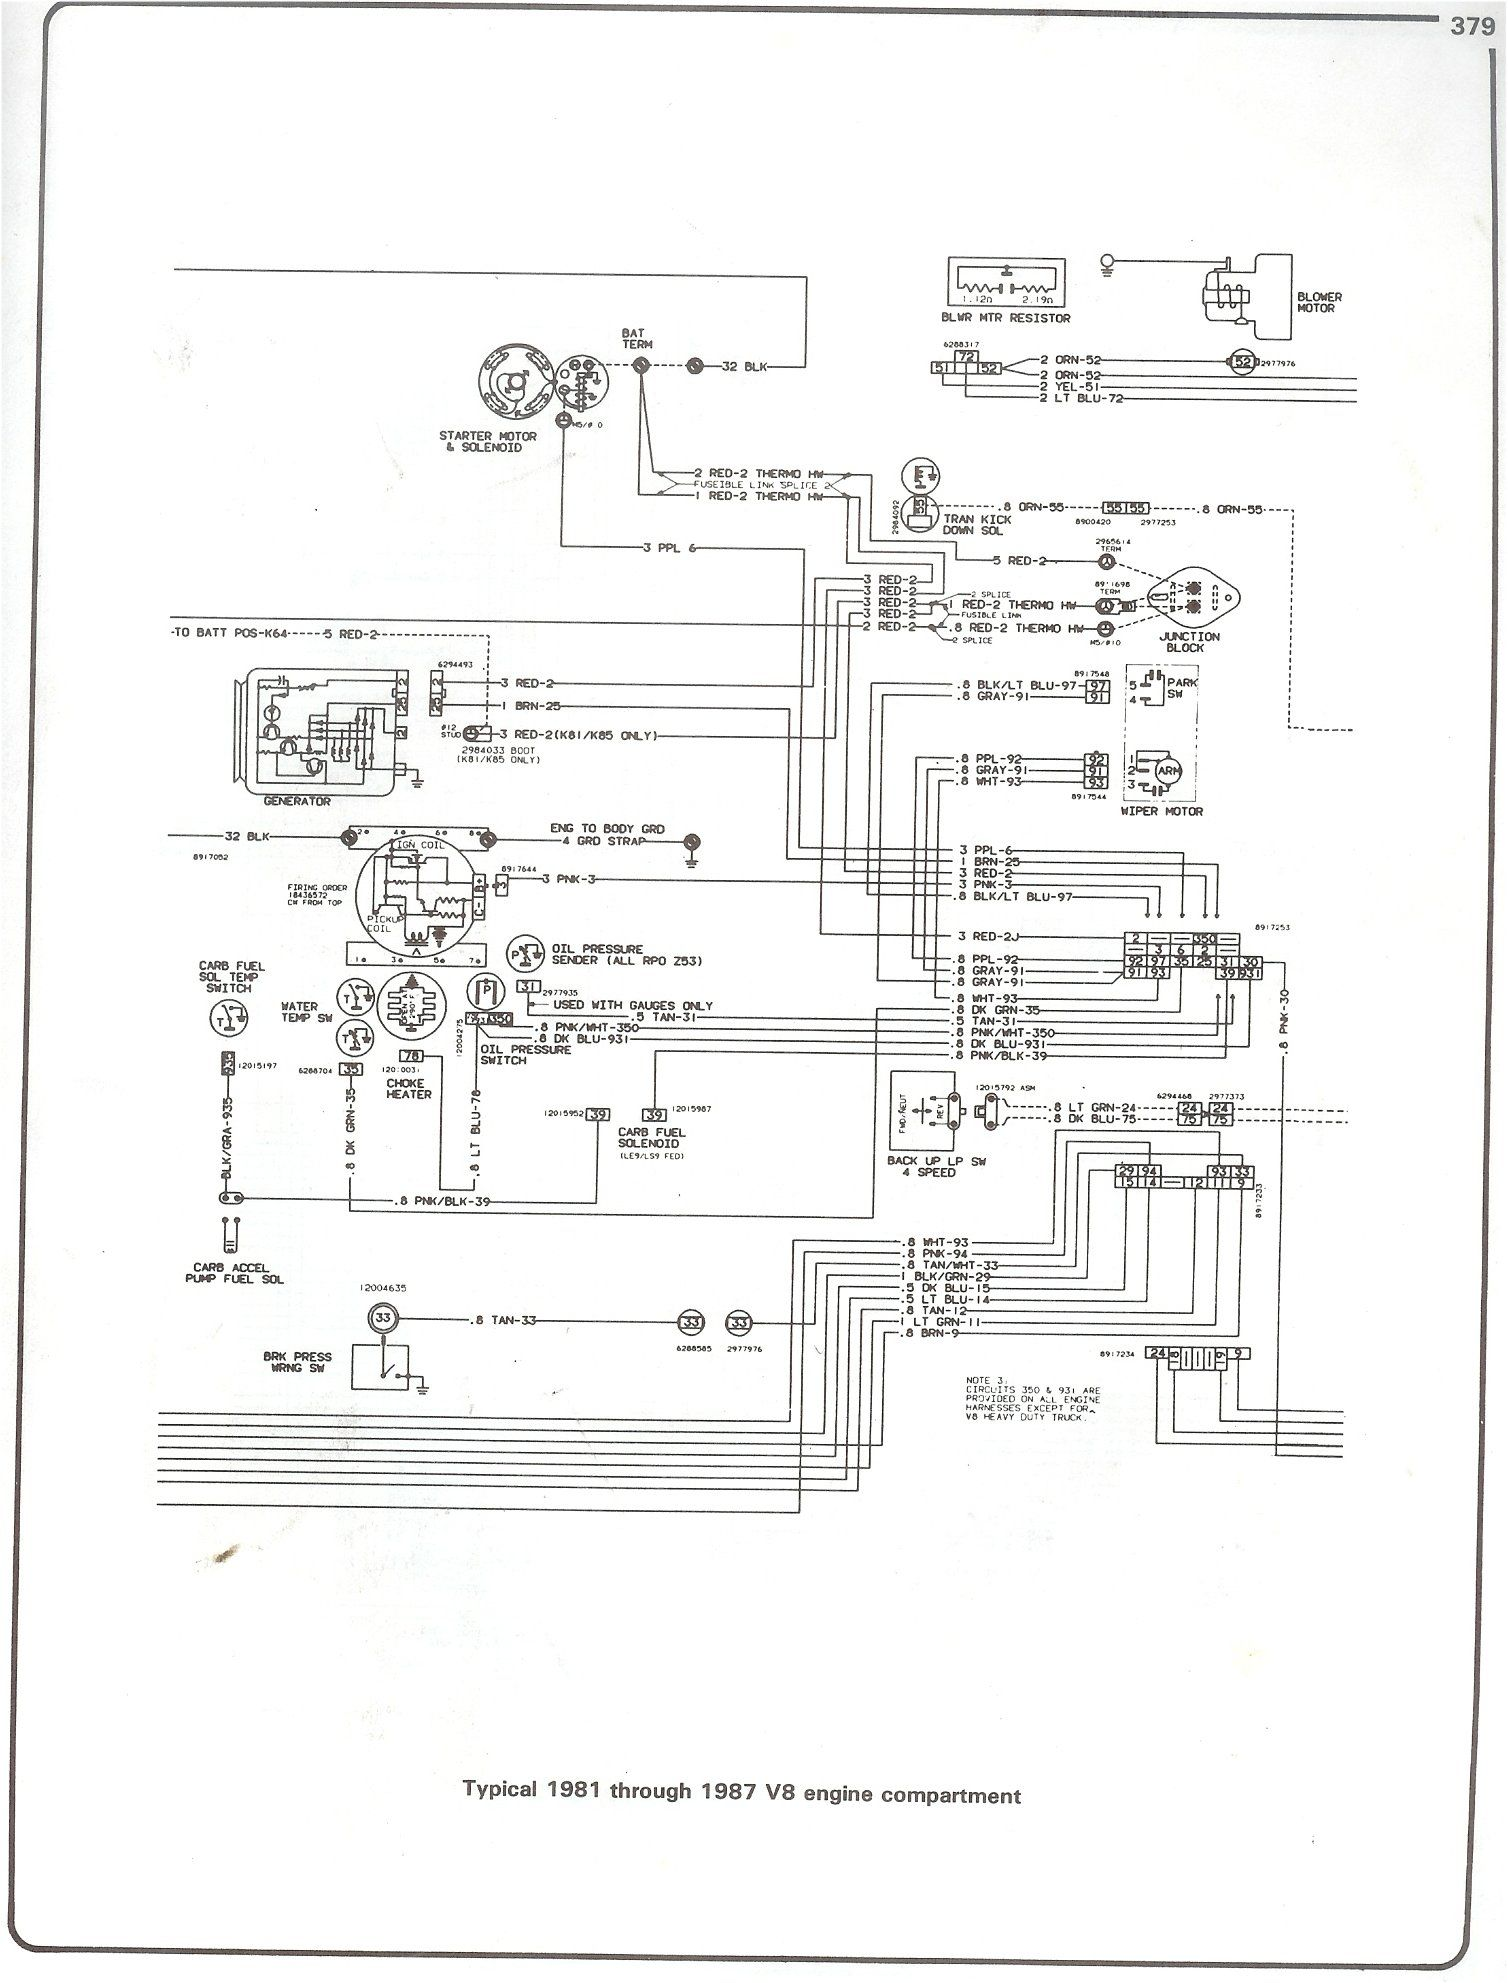 85 chevy truck wiring diagram http www 73 85 chevy truck wiring diagram 85 chevy silverado wiring diagram